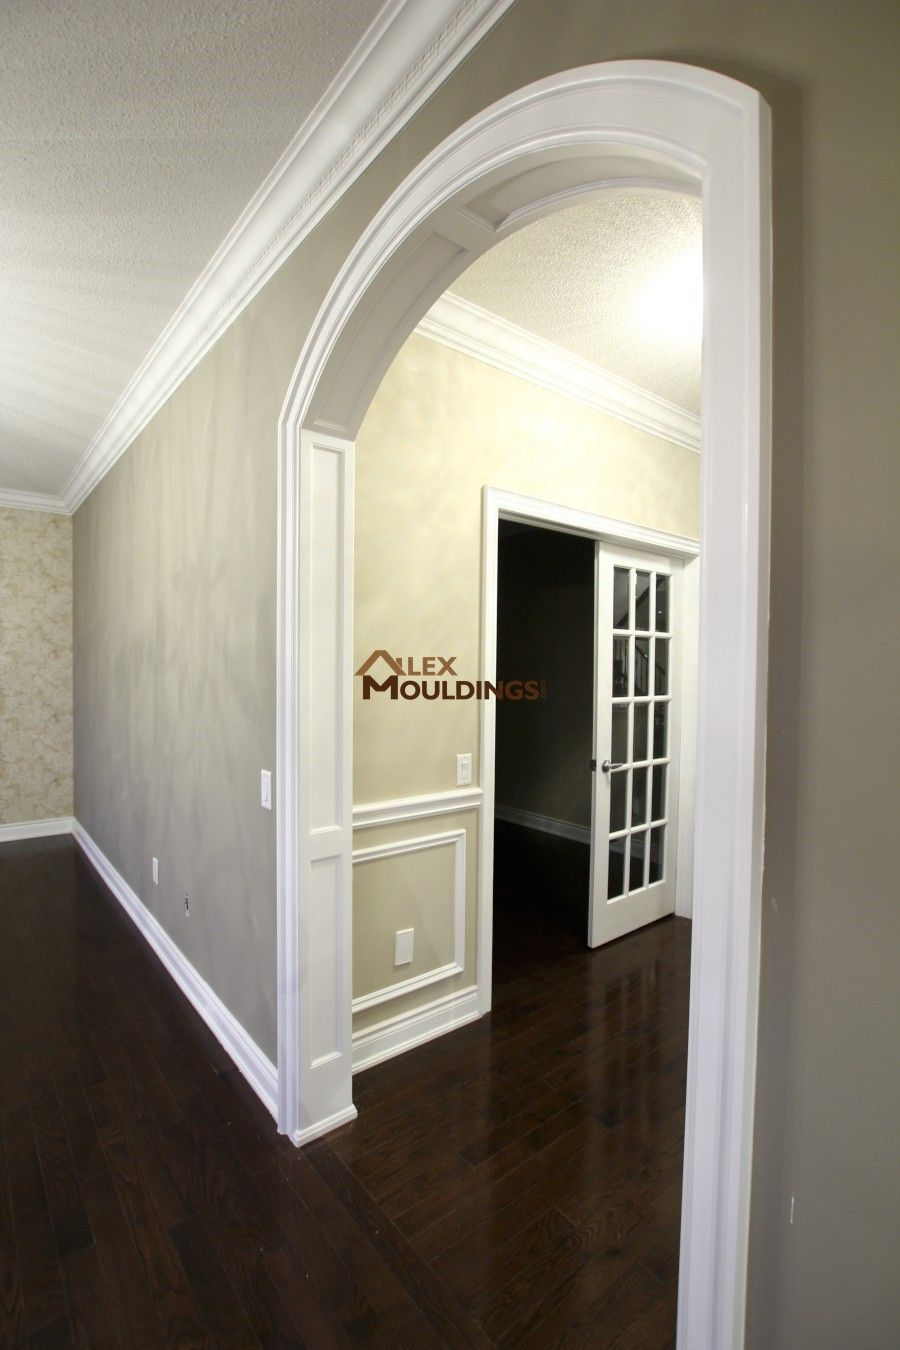 Arched Panels And Trim Around Doorway Archways In Homes Moldings And Trim Archway Molding